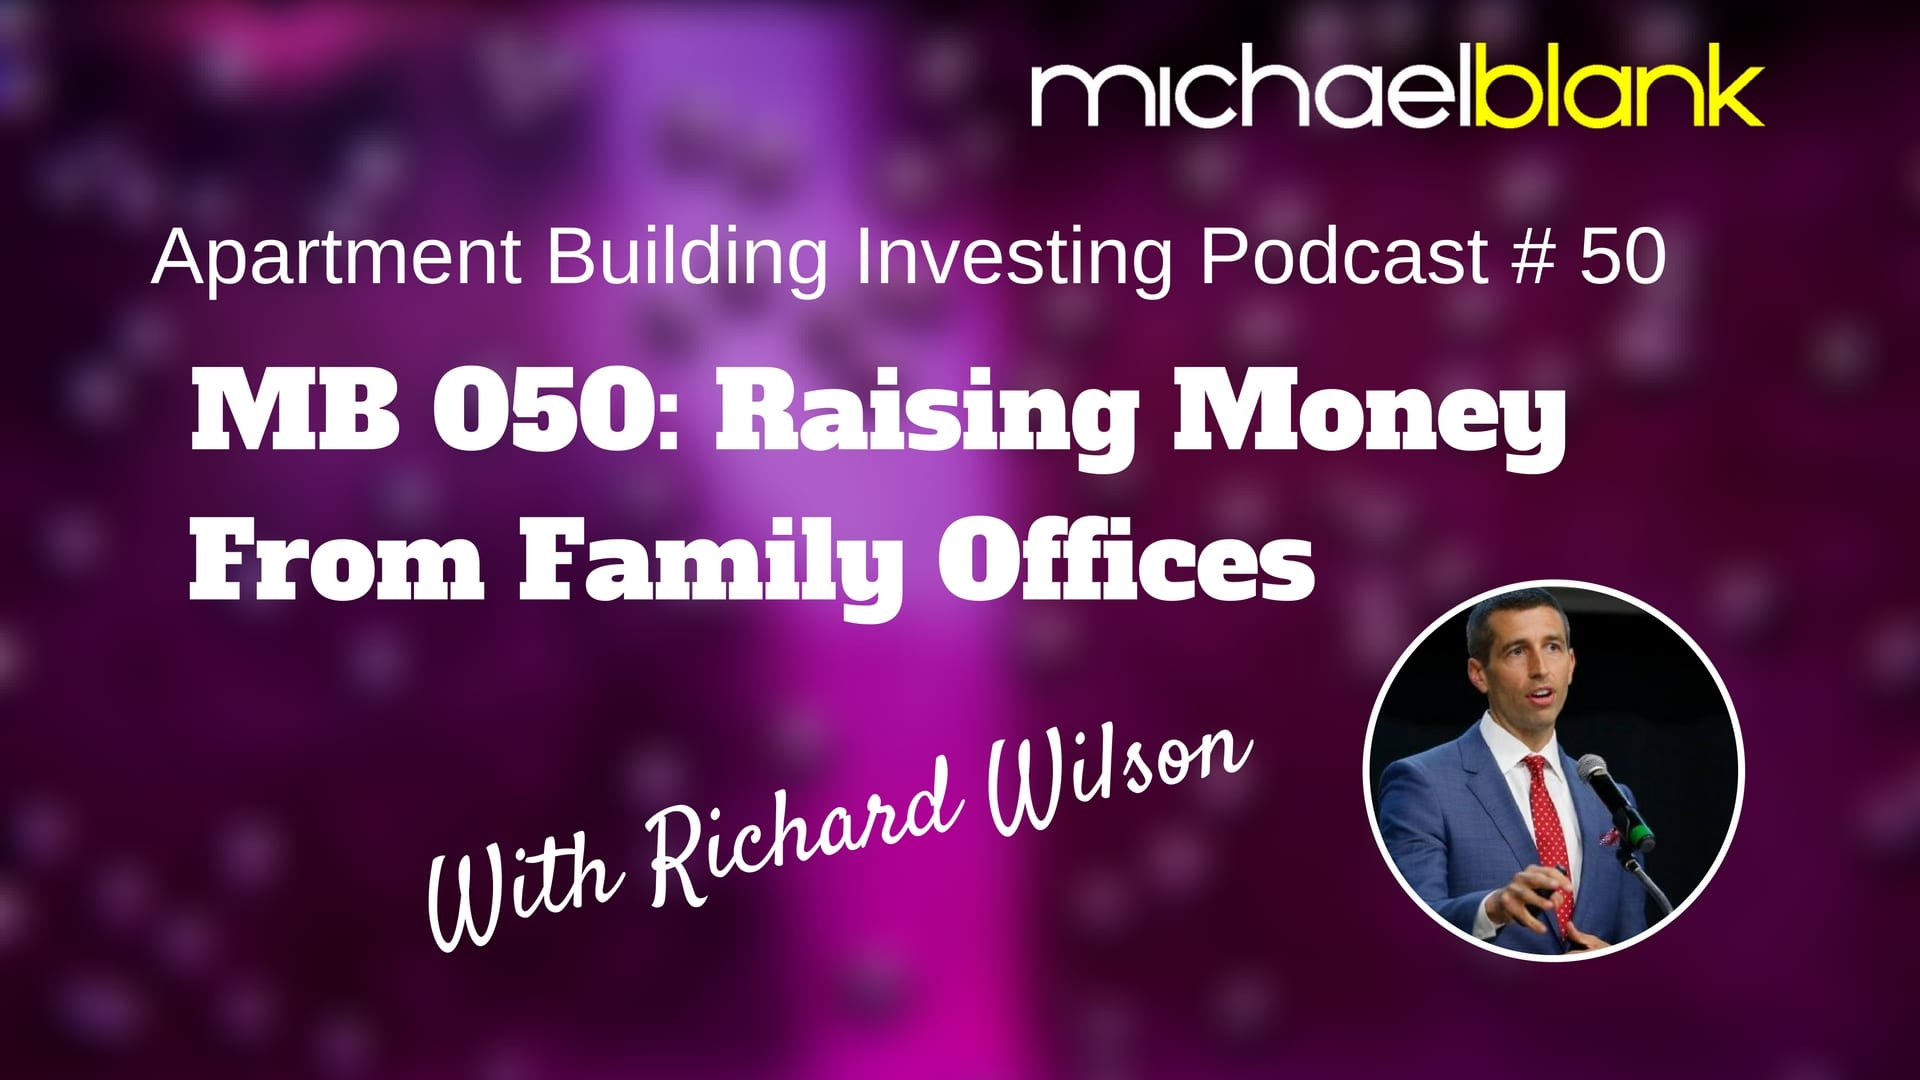 MB 050: Raising Money from Family Offices  (With Richard Wilson)